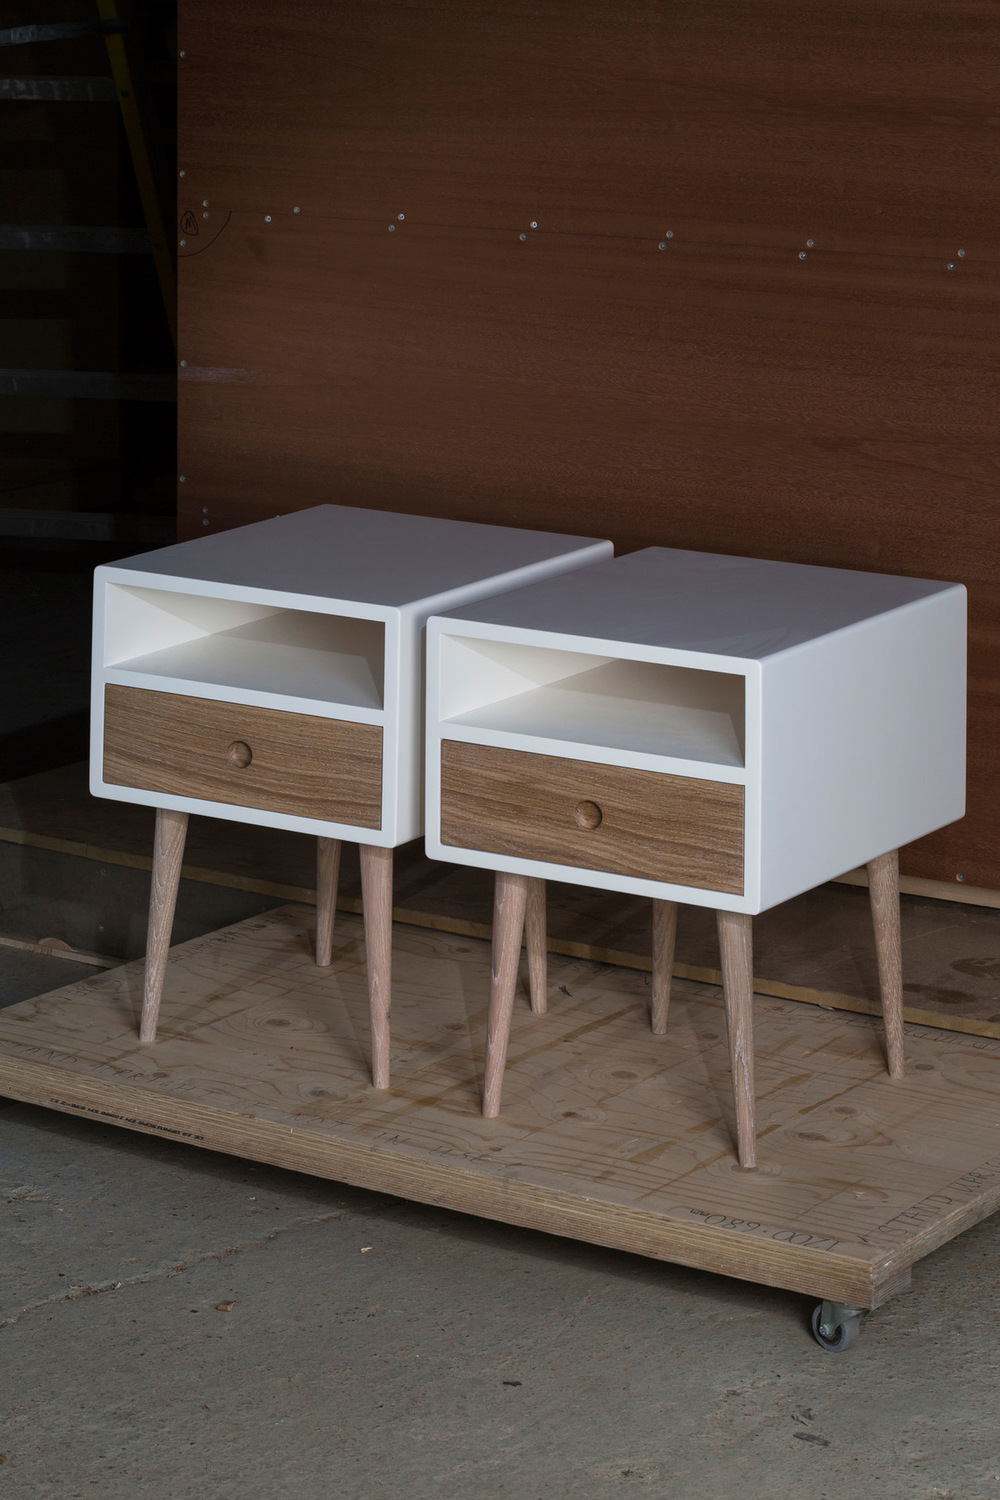 Merrett Houmøller Architects - Bedside tables with oak detailing